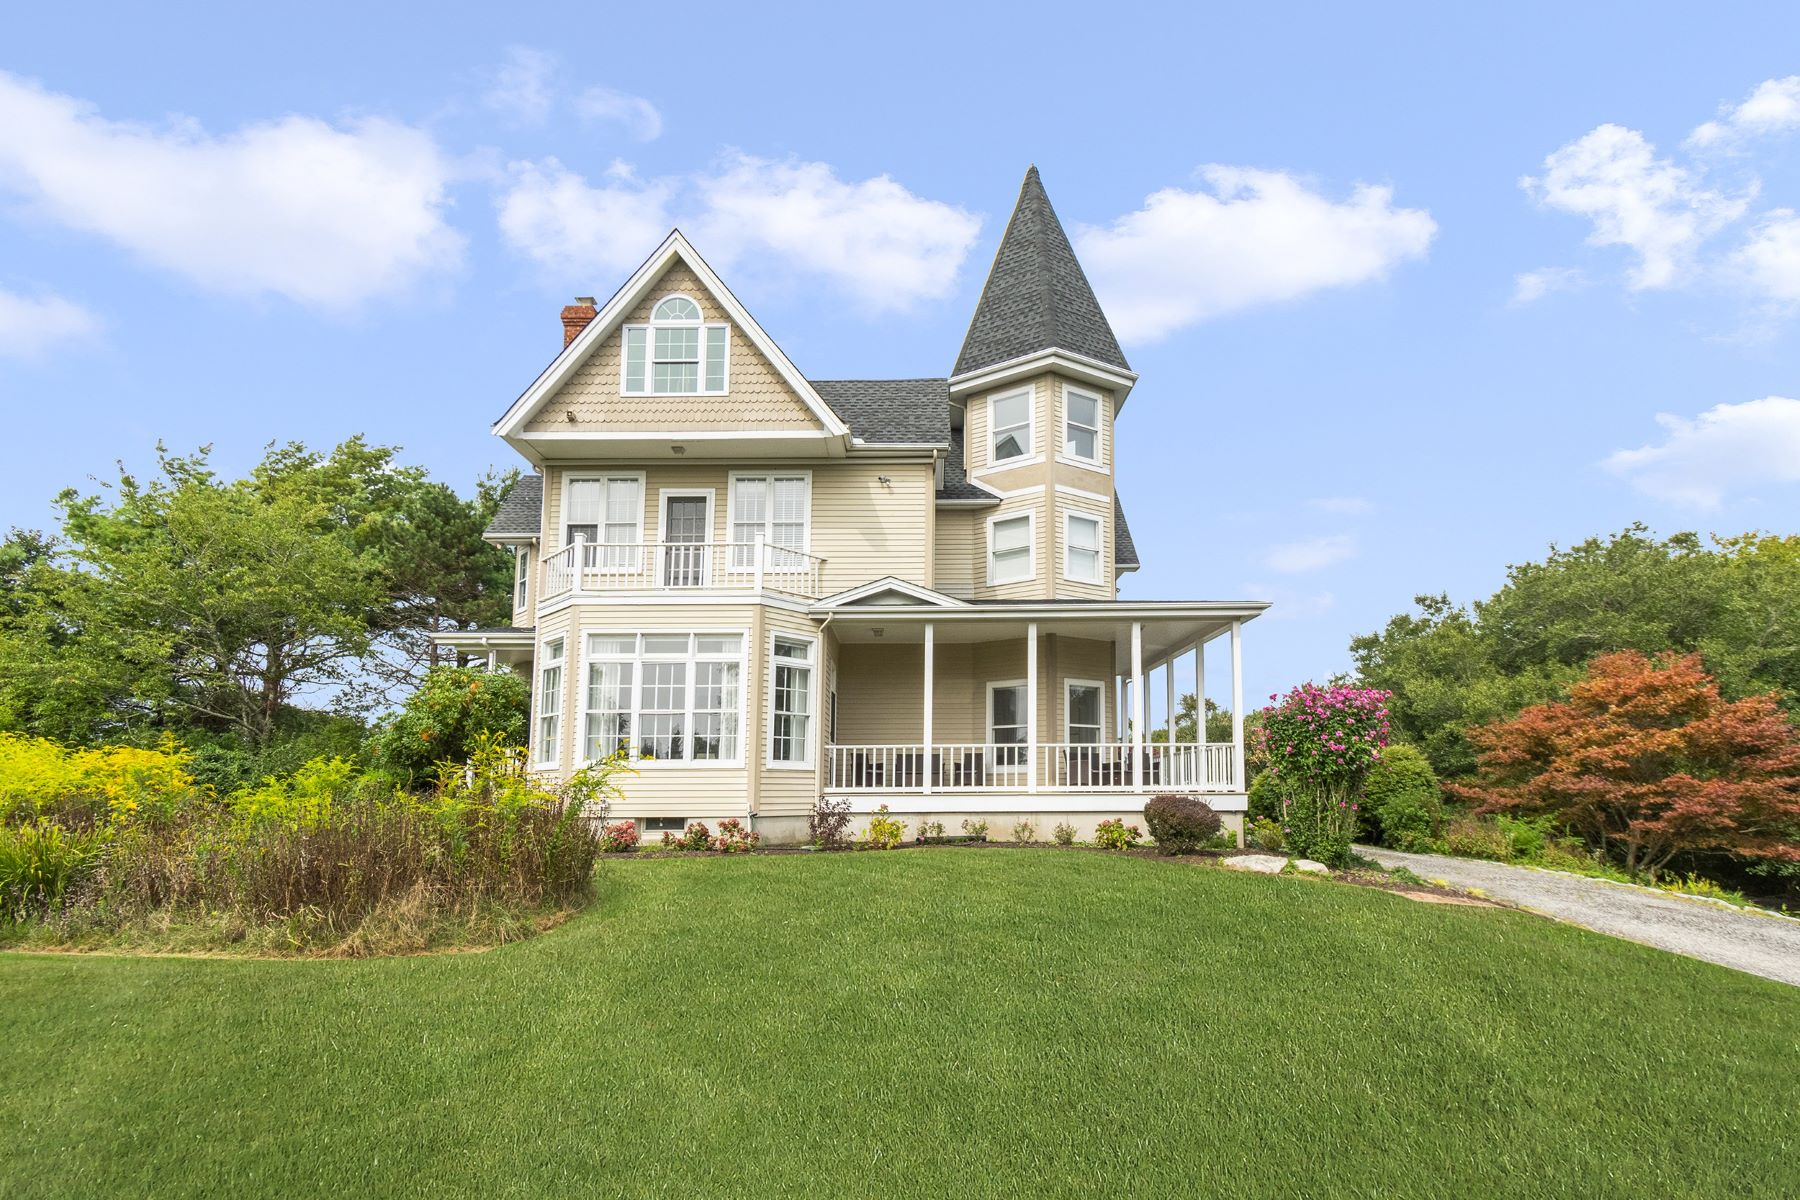 Single Family Homes for Sale at 51 Sunset Boulevard, Narragansett, RI 51 Sunset Boulevard Narragansett, Rhode Island 02882 United States